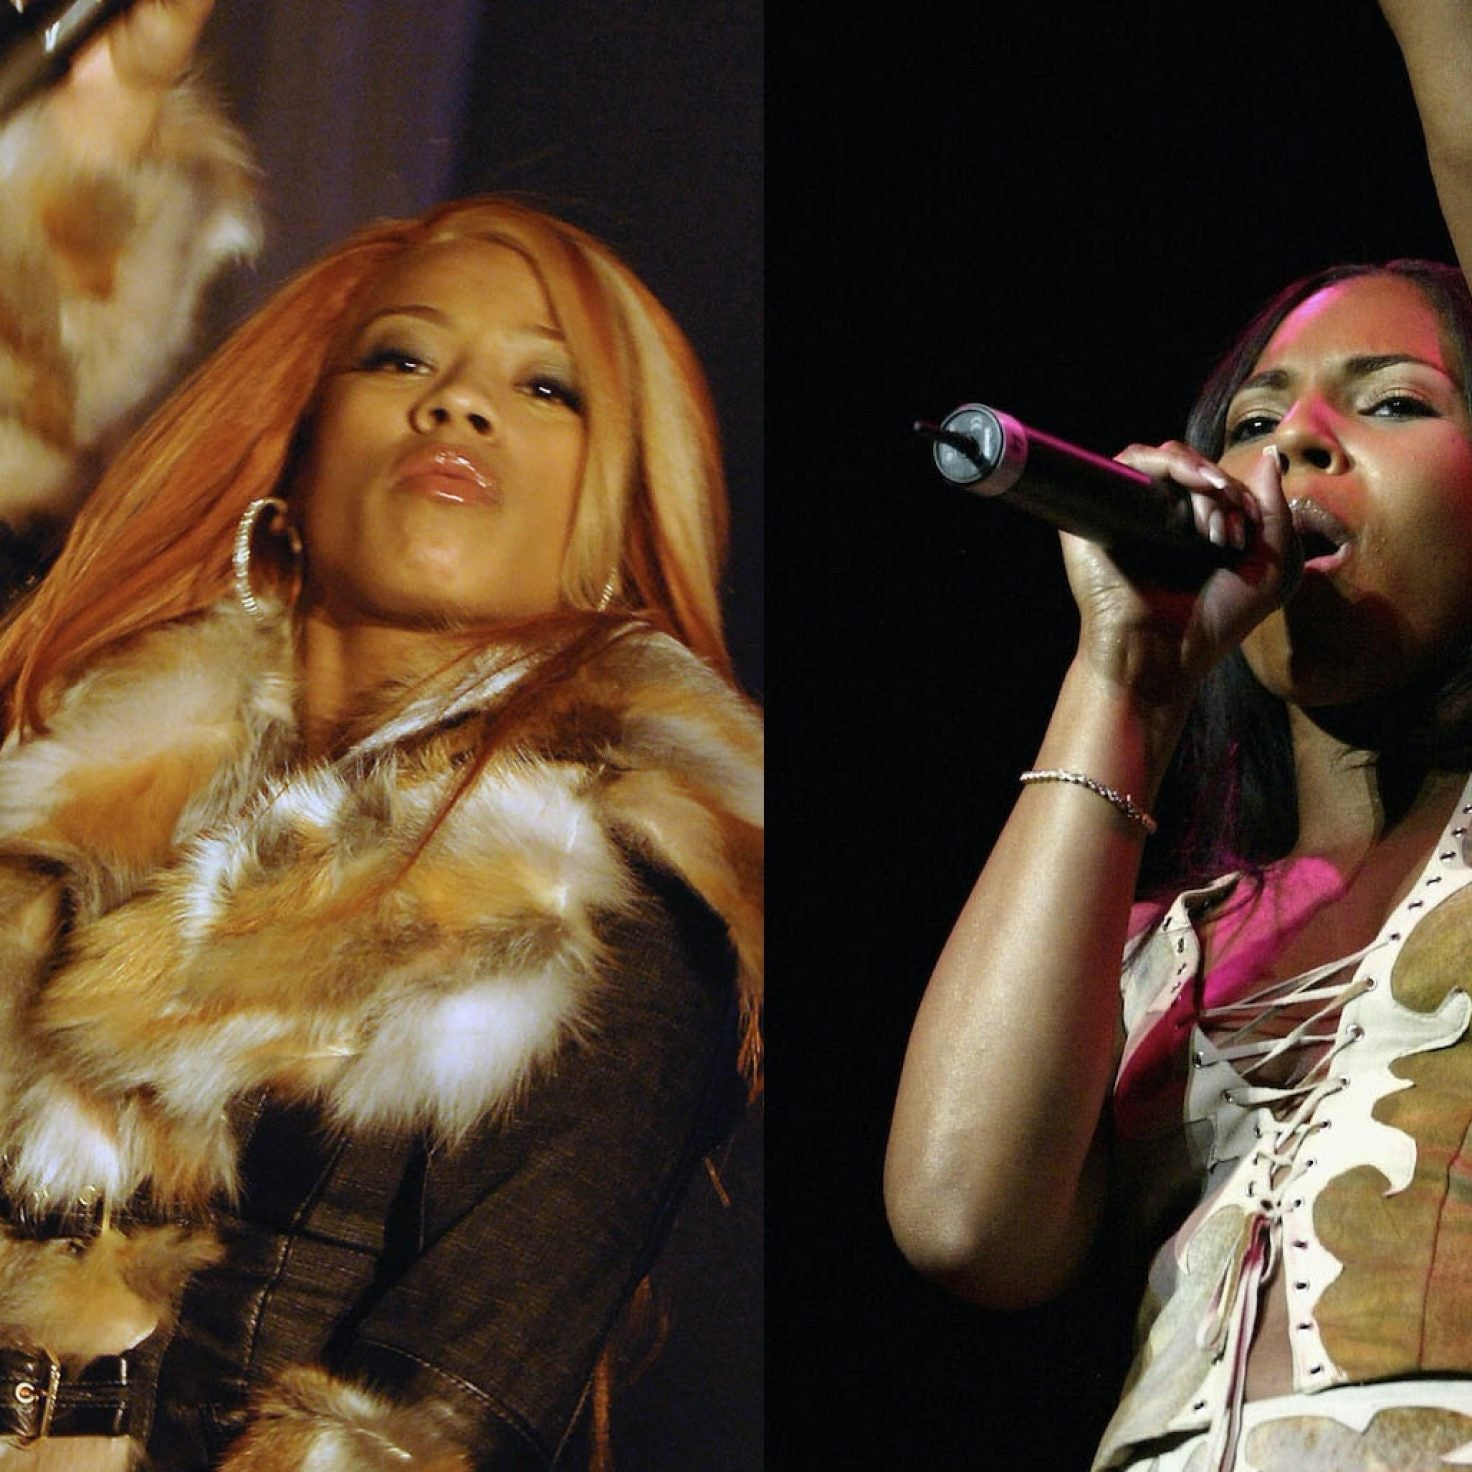 Keyshia Cole And Ashanti Will Face Off In The Next Verzuz Battle